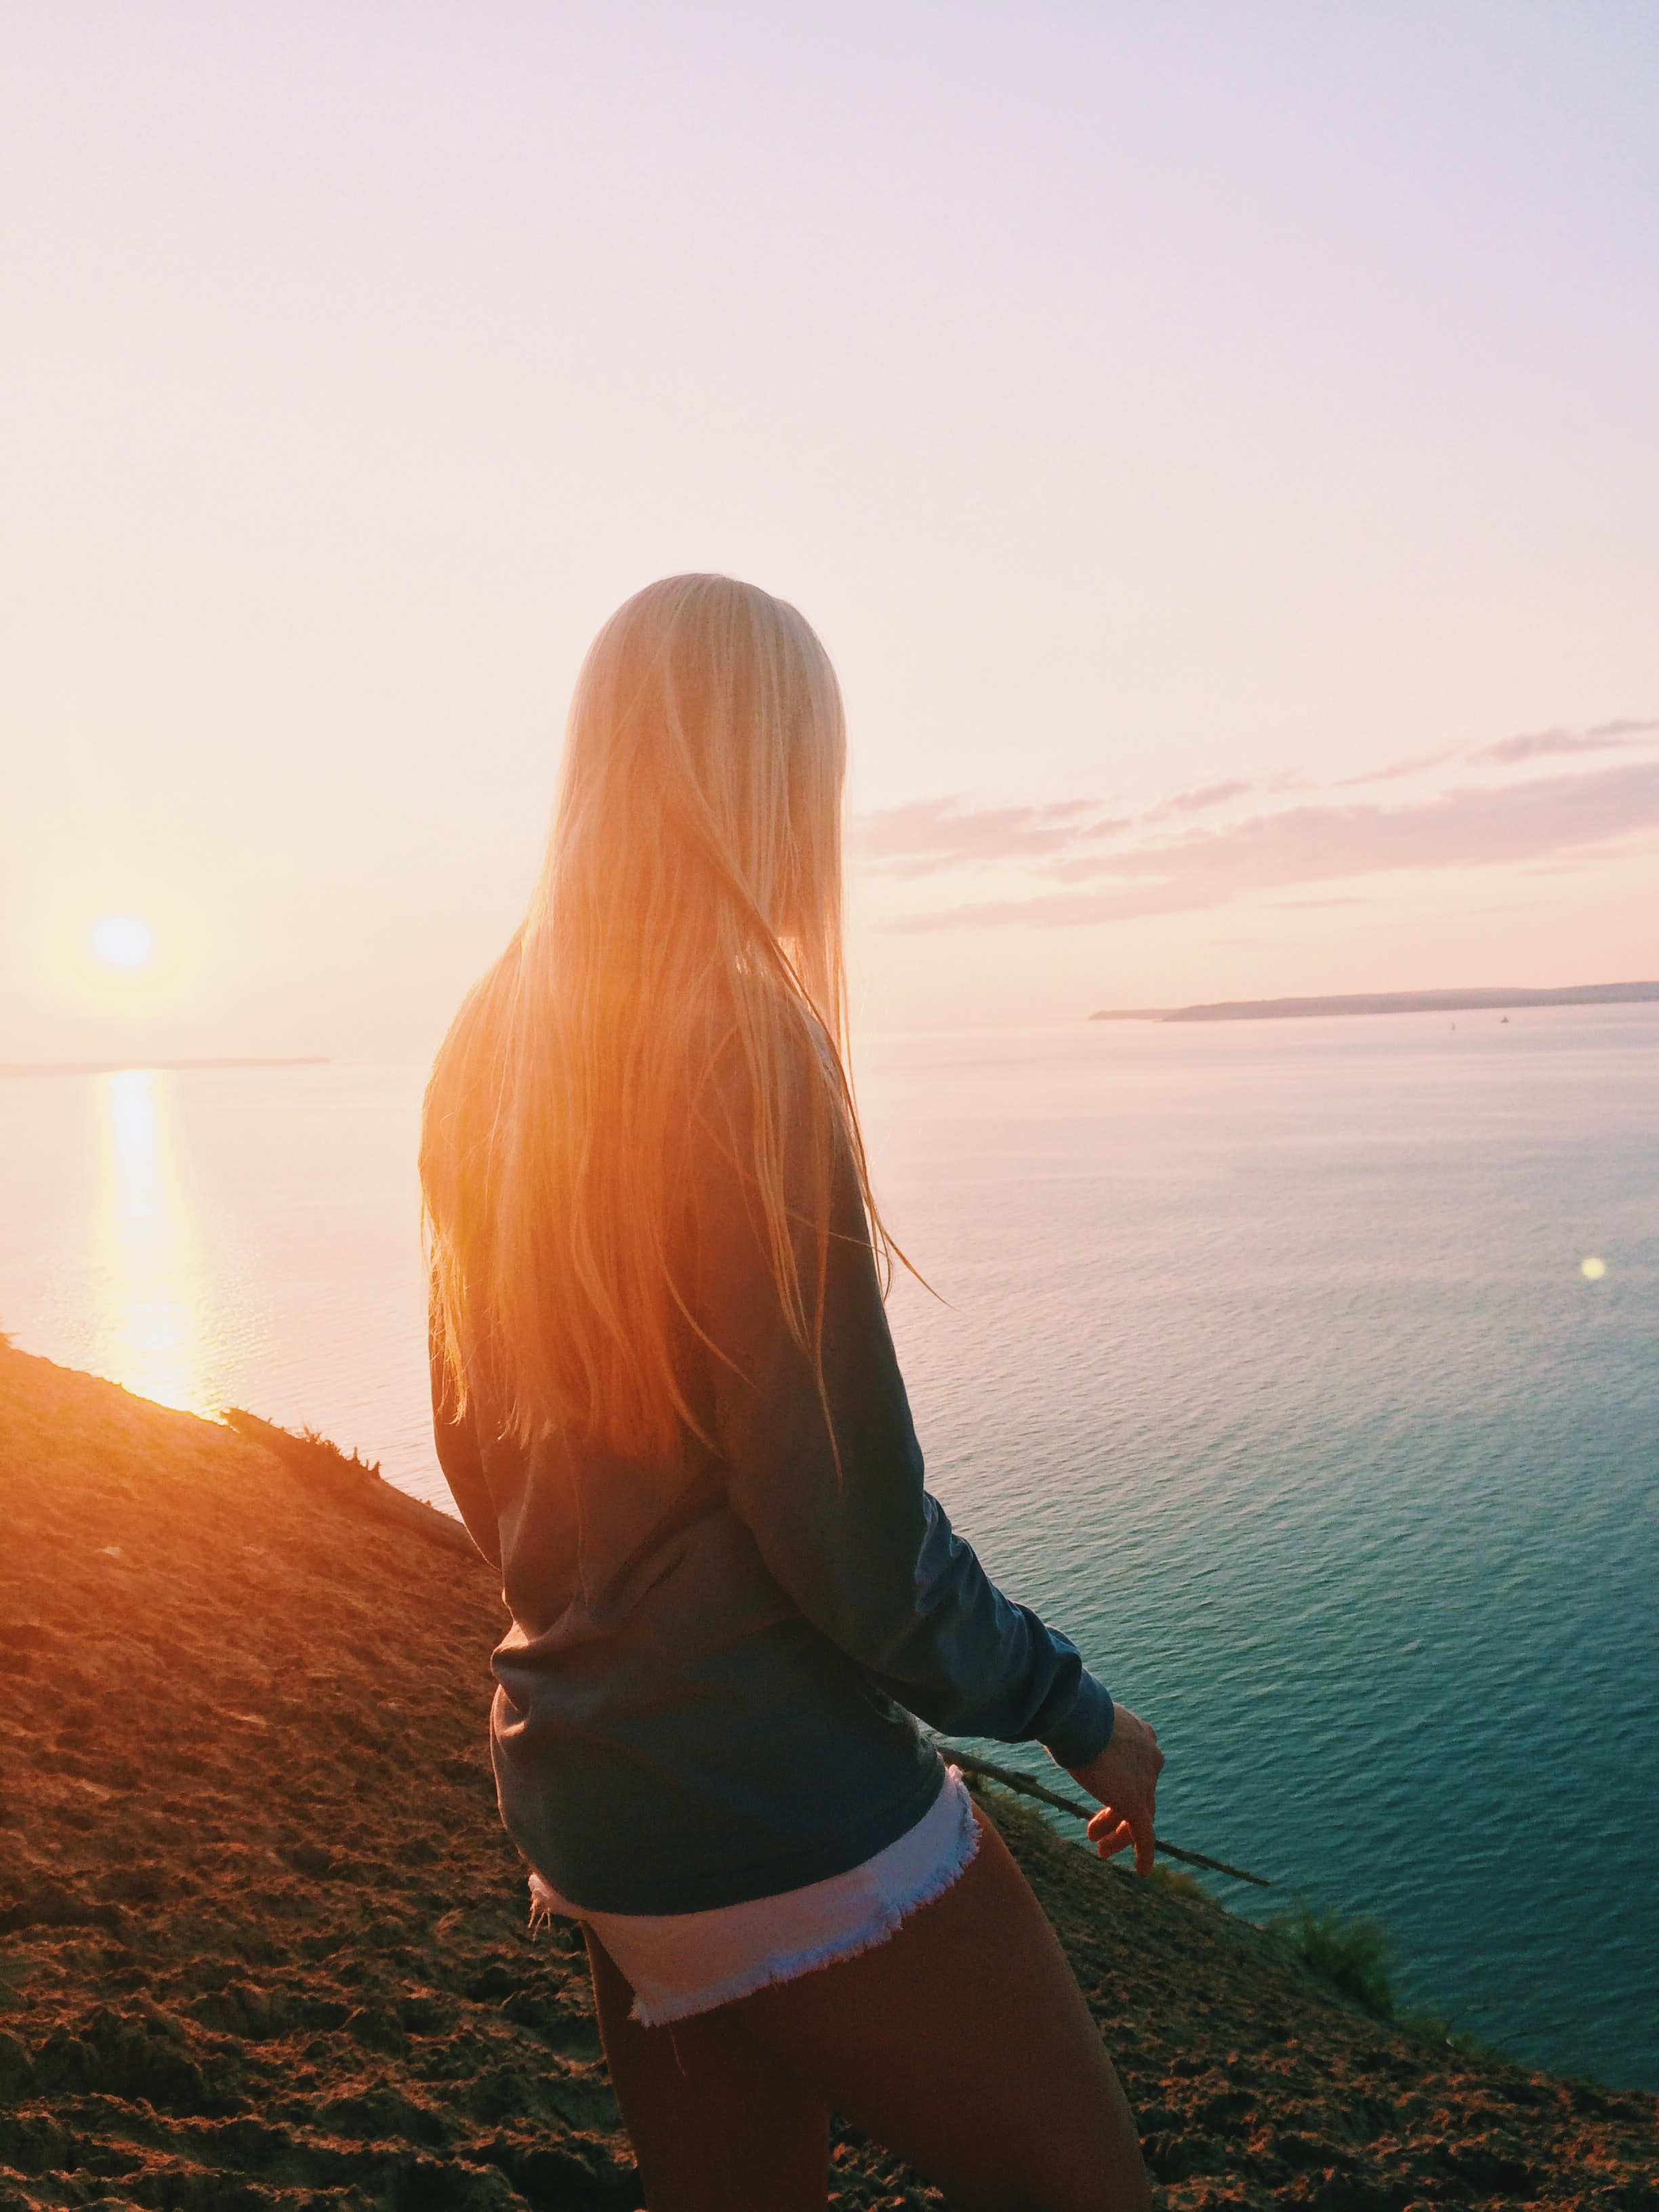 woman stands near body of water during golden hour